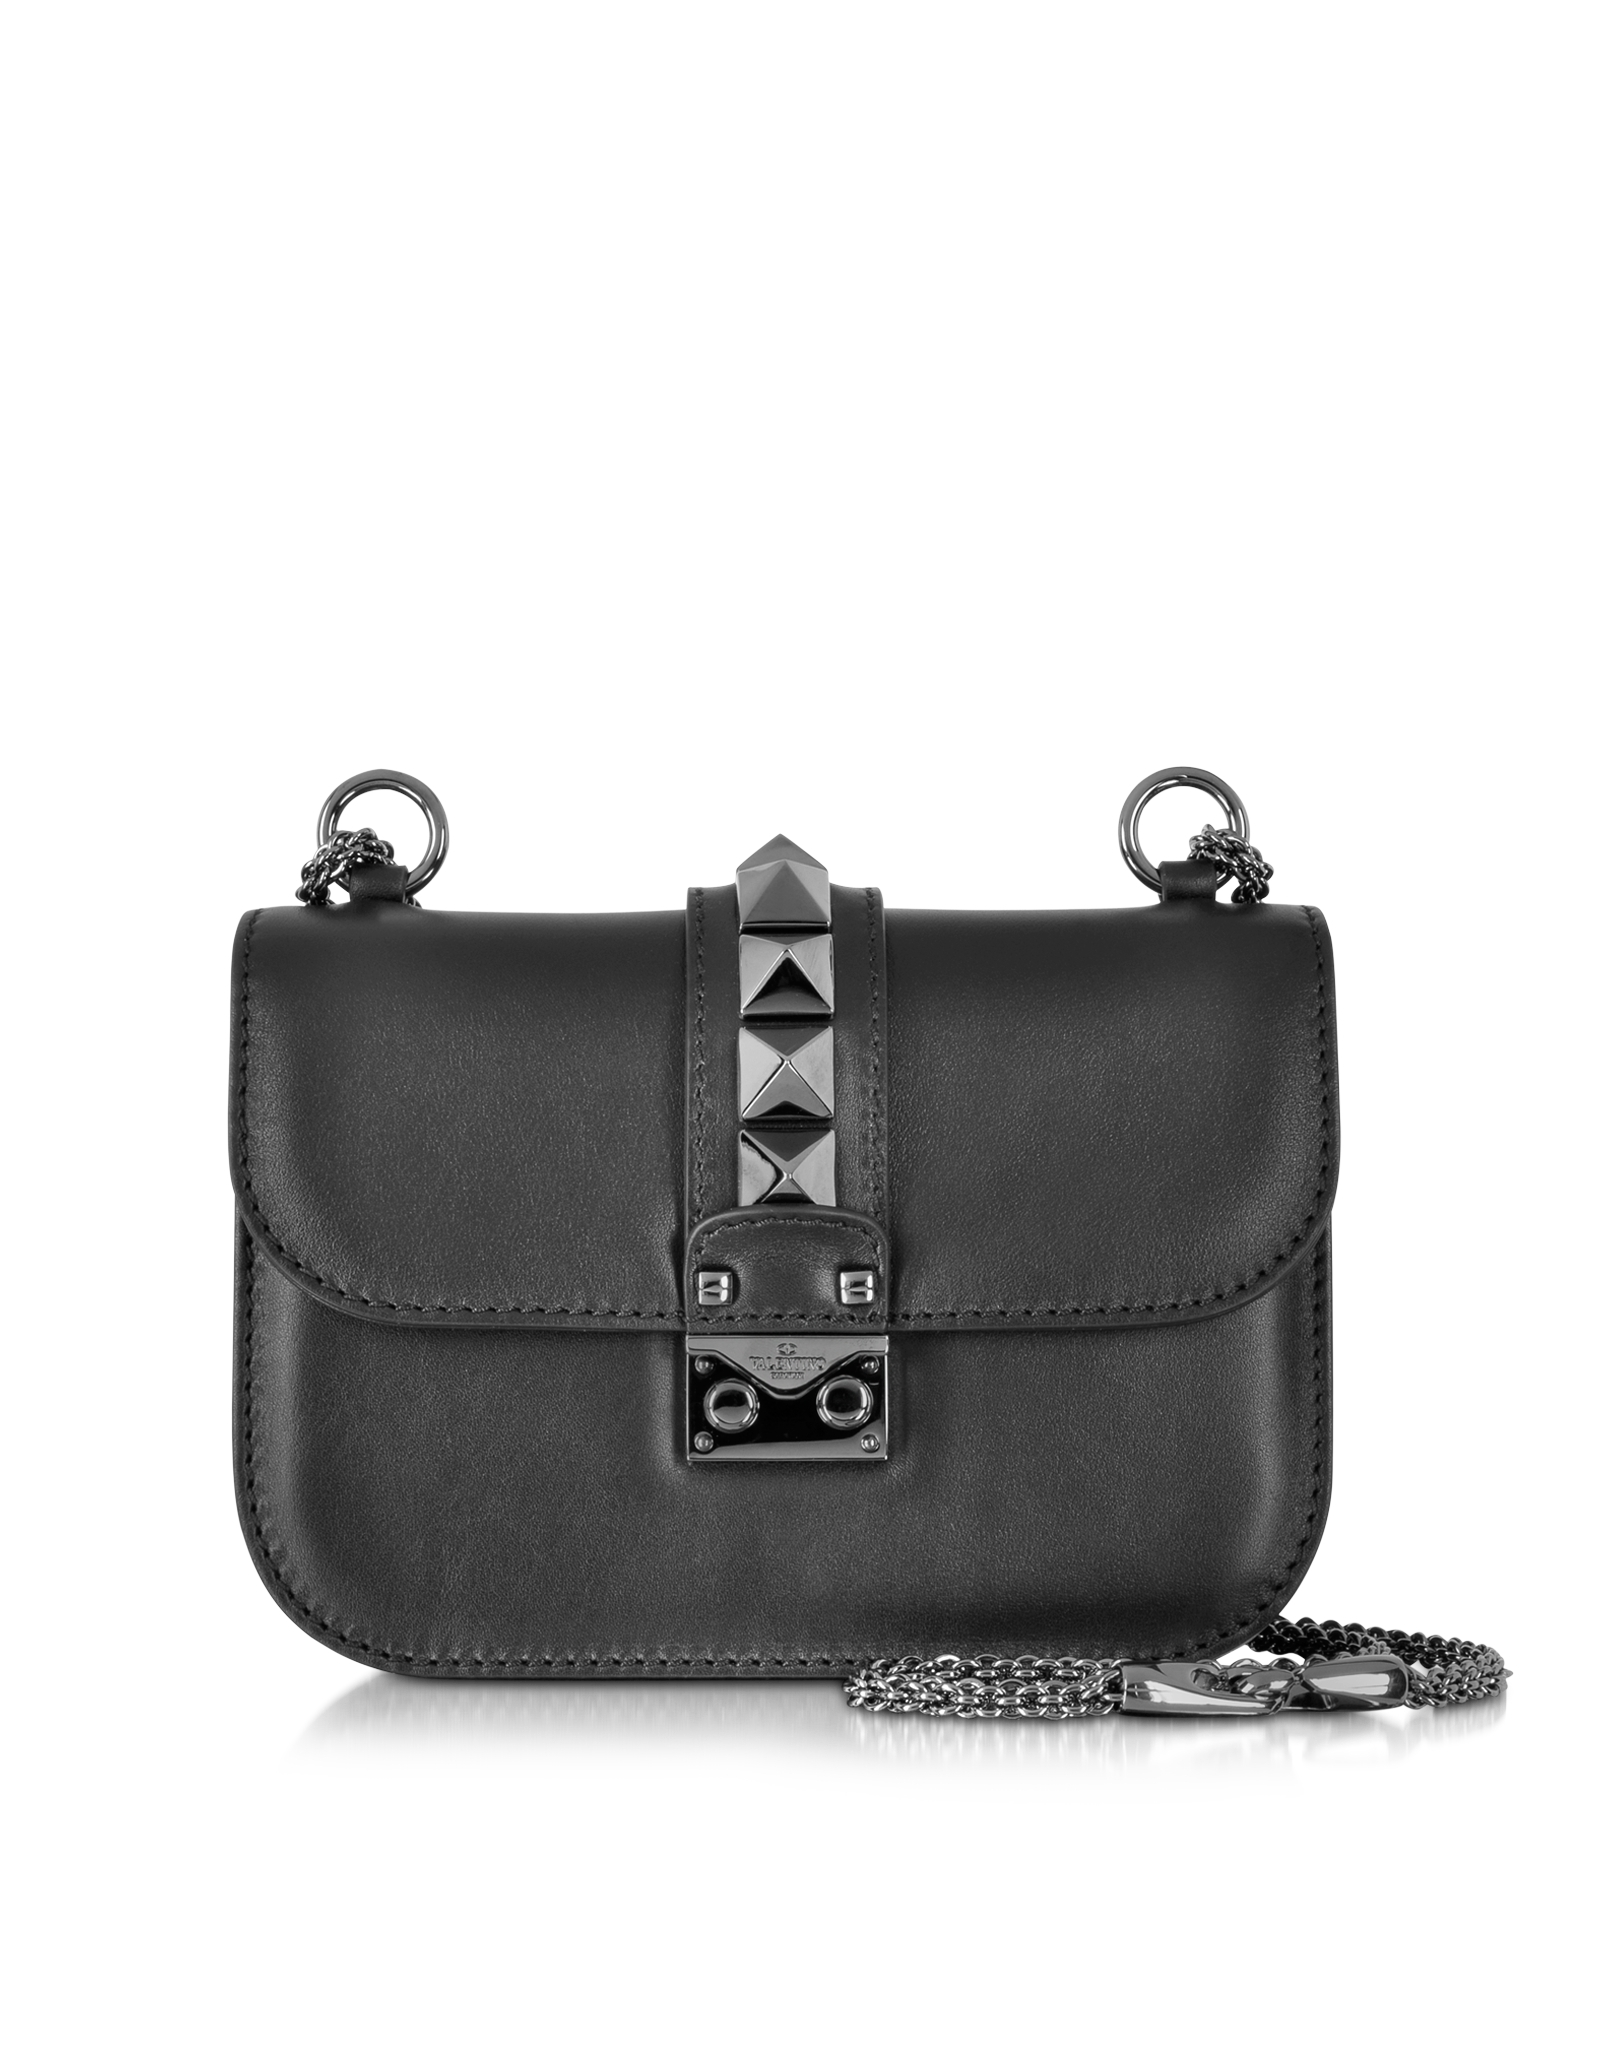 496c2d18a4726 Lyst - Valentino Noir Small Chain Shoulder Bag in Black